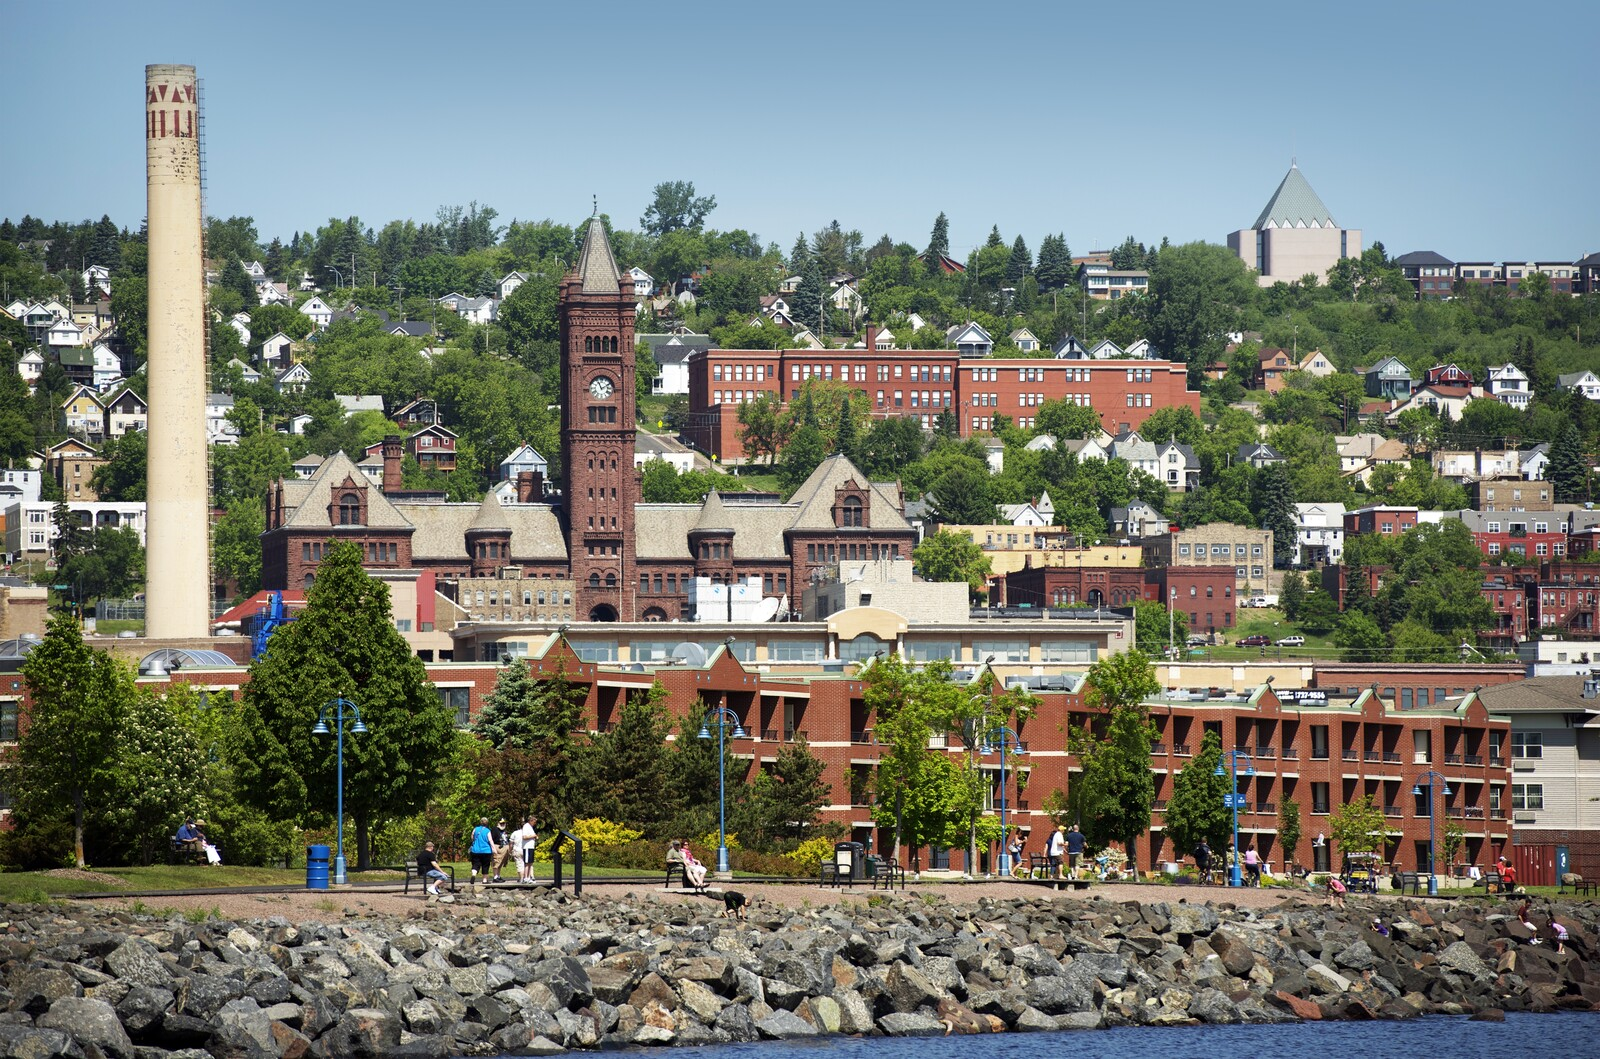 Photo from lake superior looking into duluth canal park area with the boardwalk along the lake